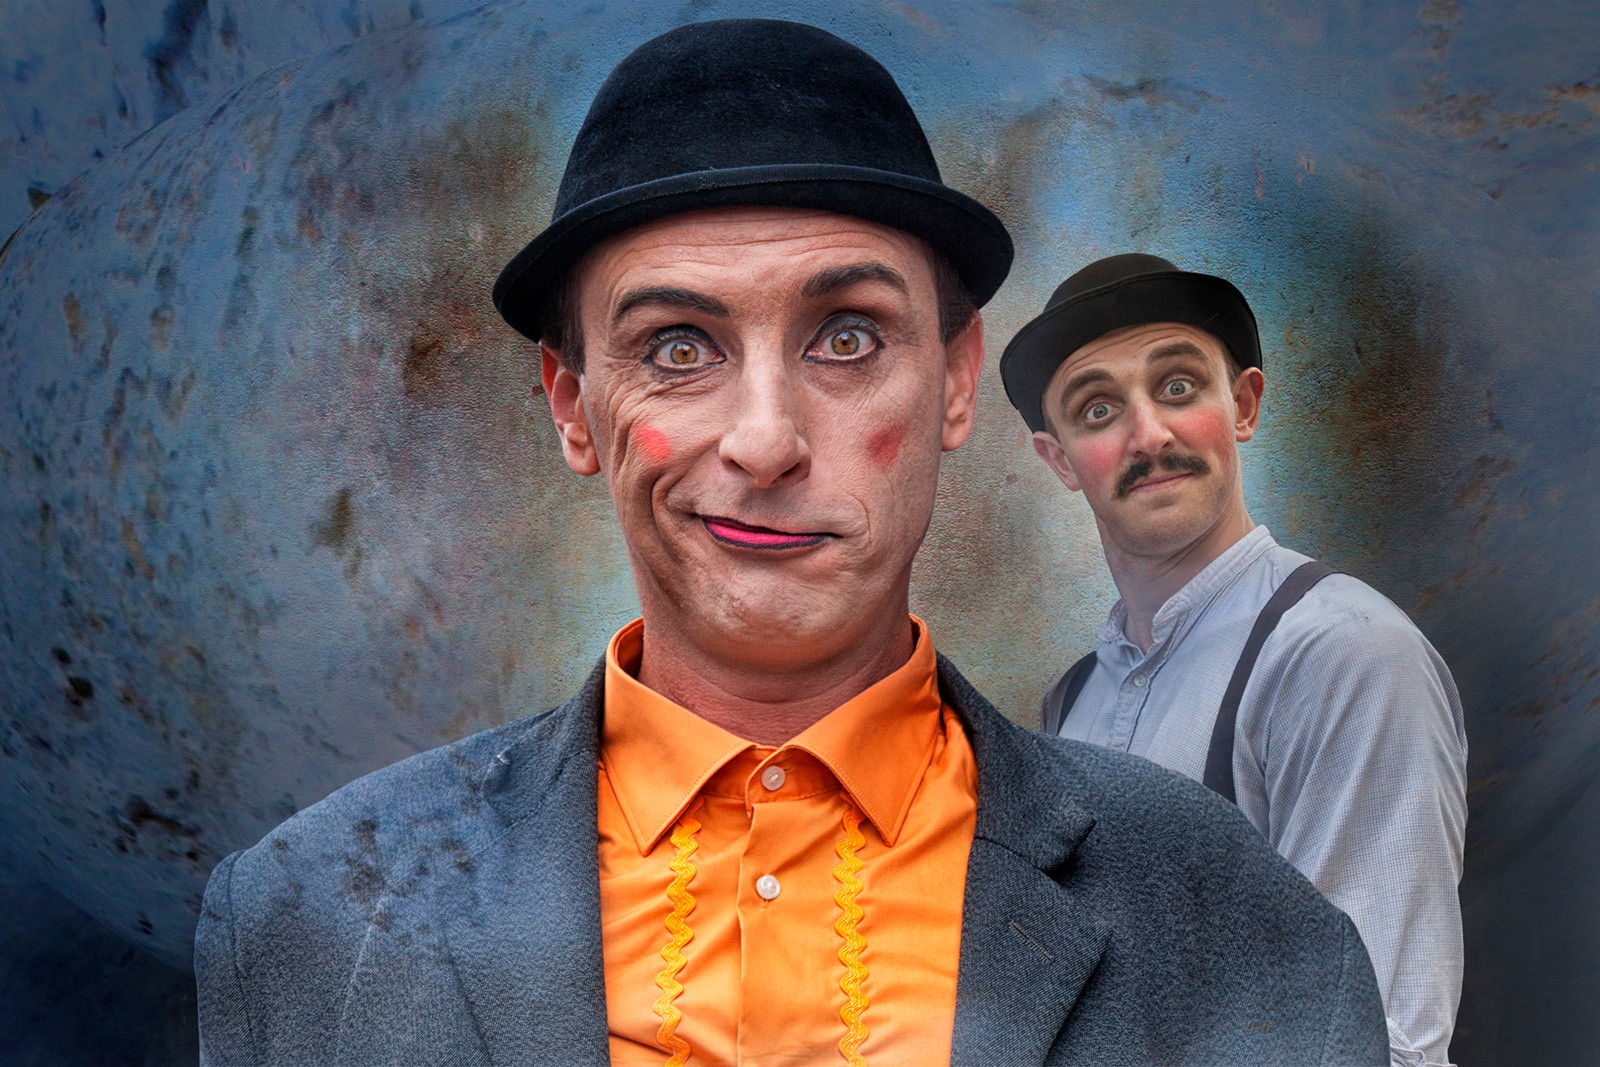 COLOUR - Two Clowns by Judy Boyle (18 marks)